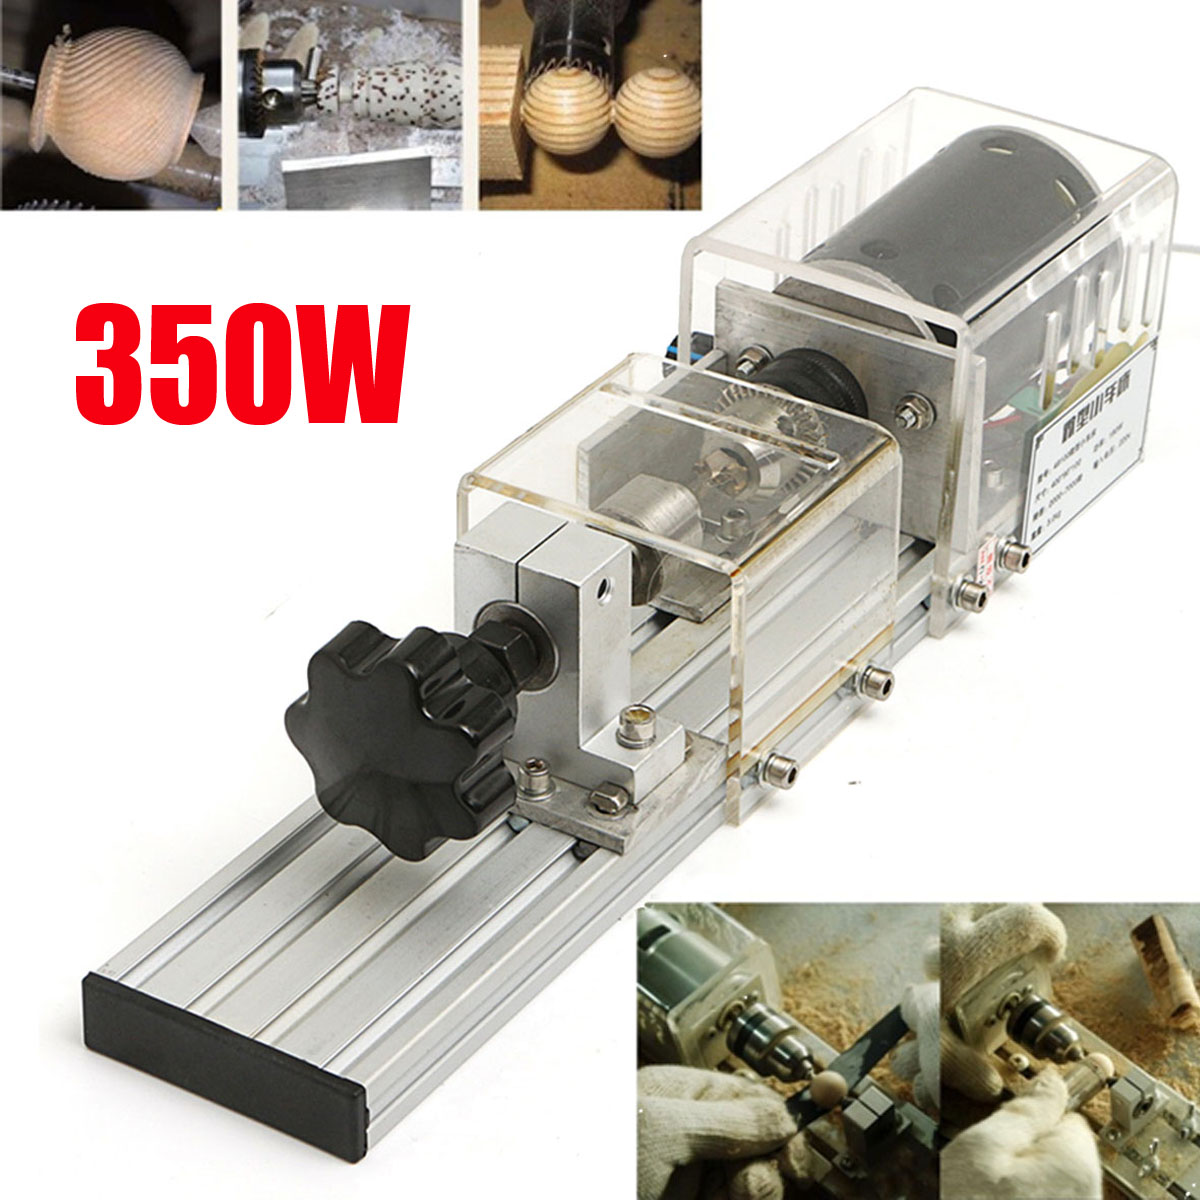 Raitool 350W Mini Lathe Machine Woodworking DIY Lathe Set with Power Adapter